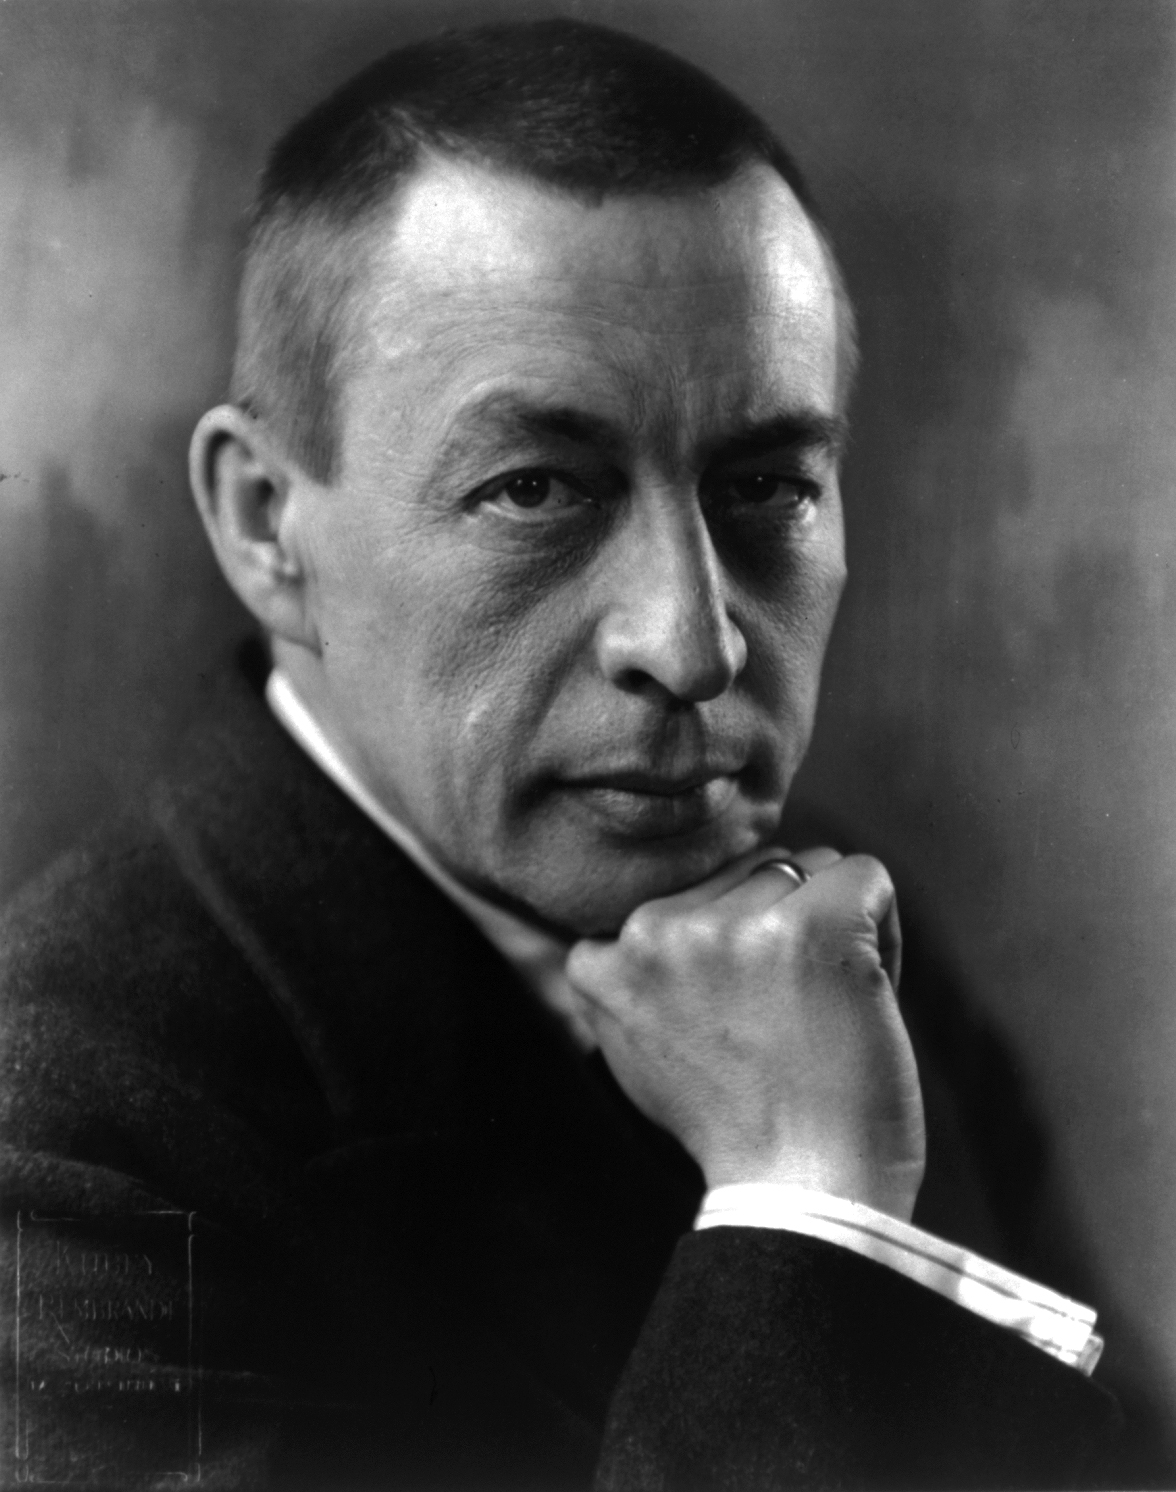 https://upload.wikimedia.org/wikipedia/commons/b/be/Sergei_Rachmaninoff_cph.3a40575.jpg